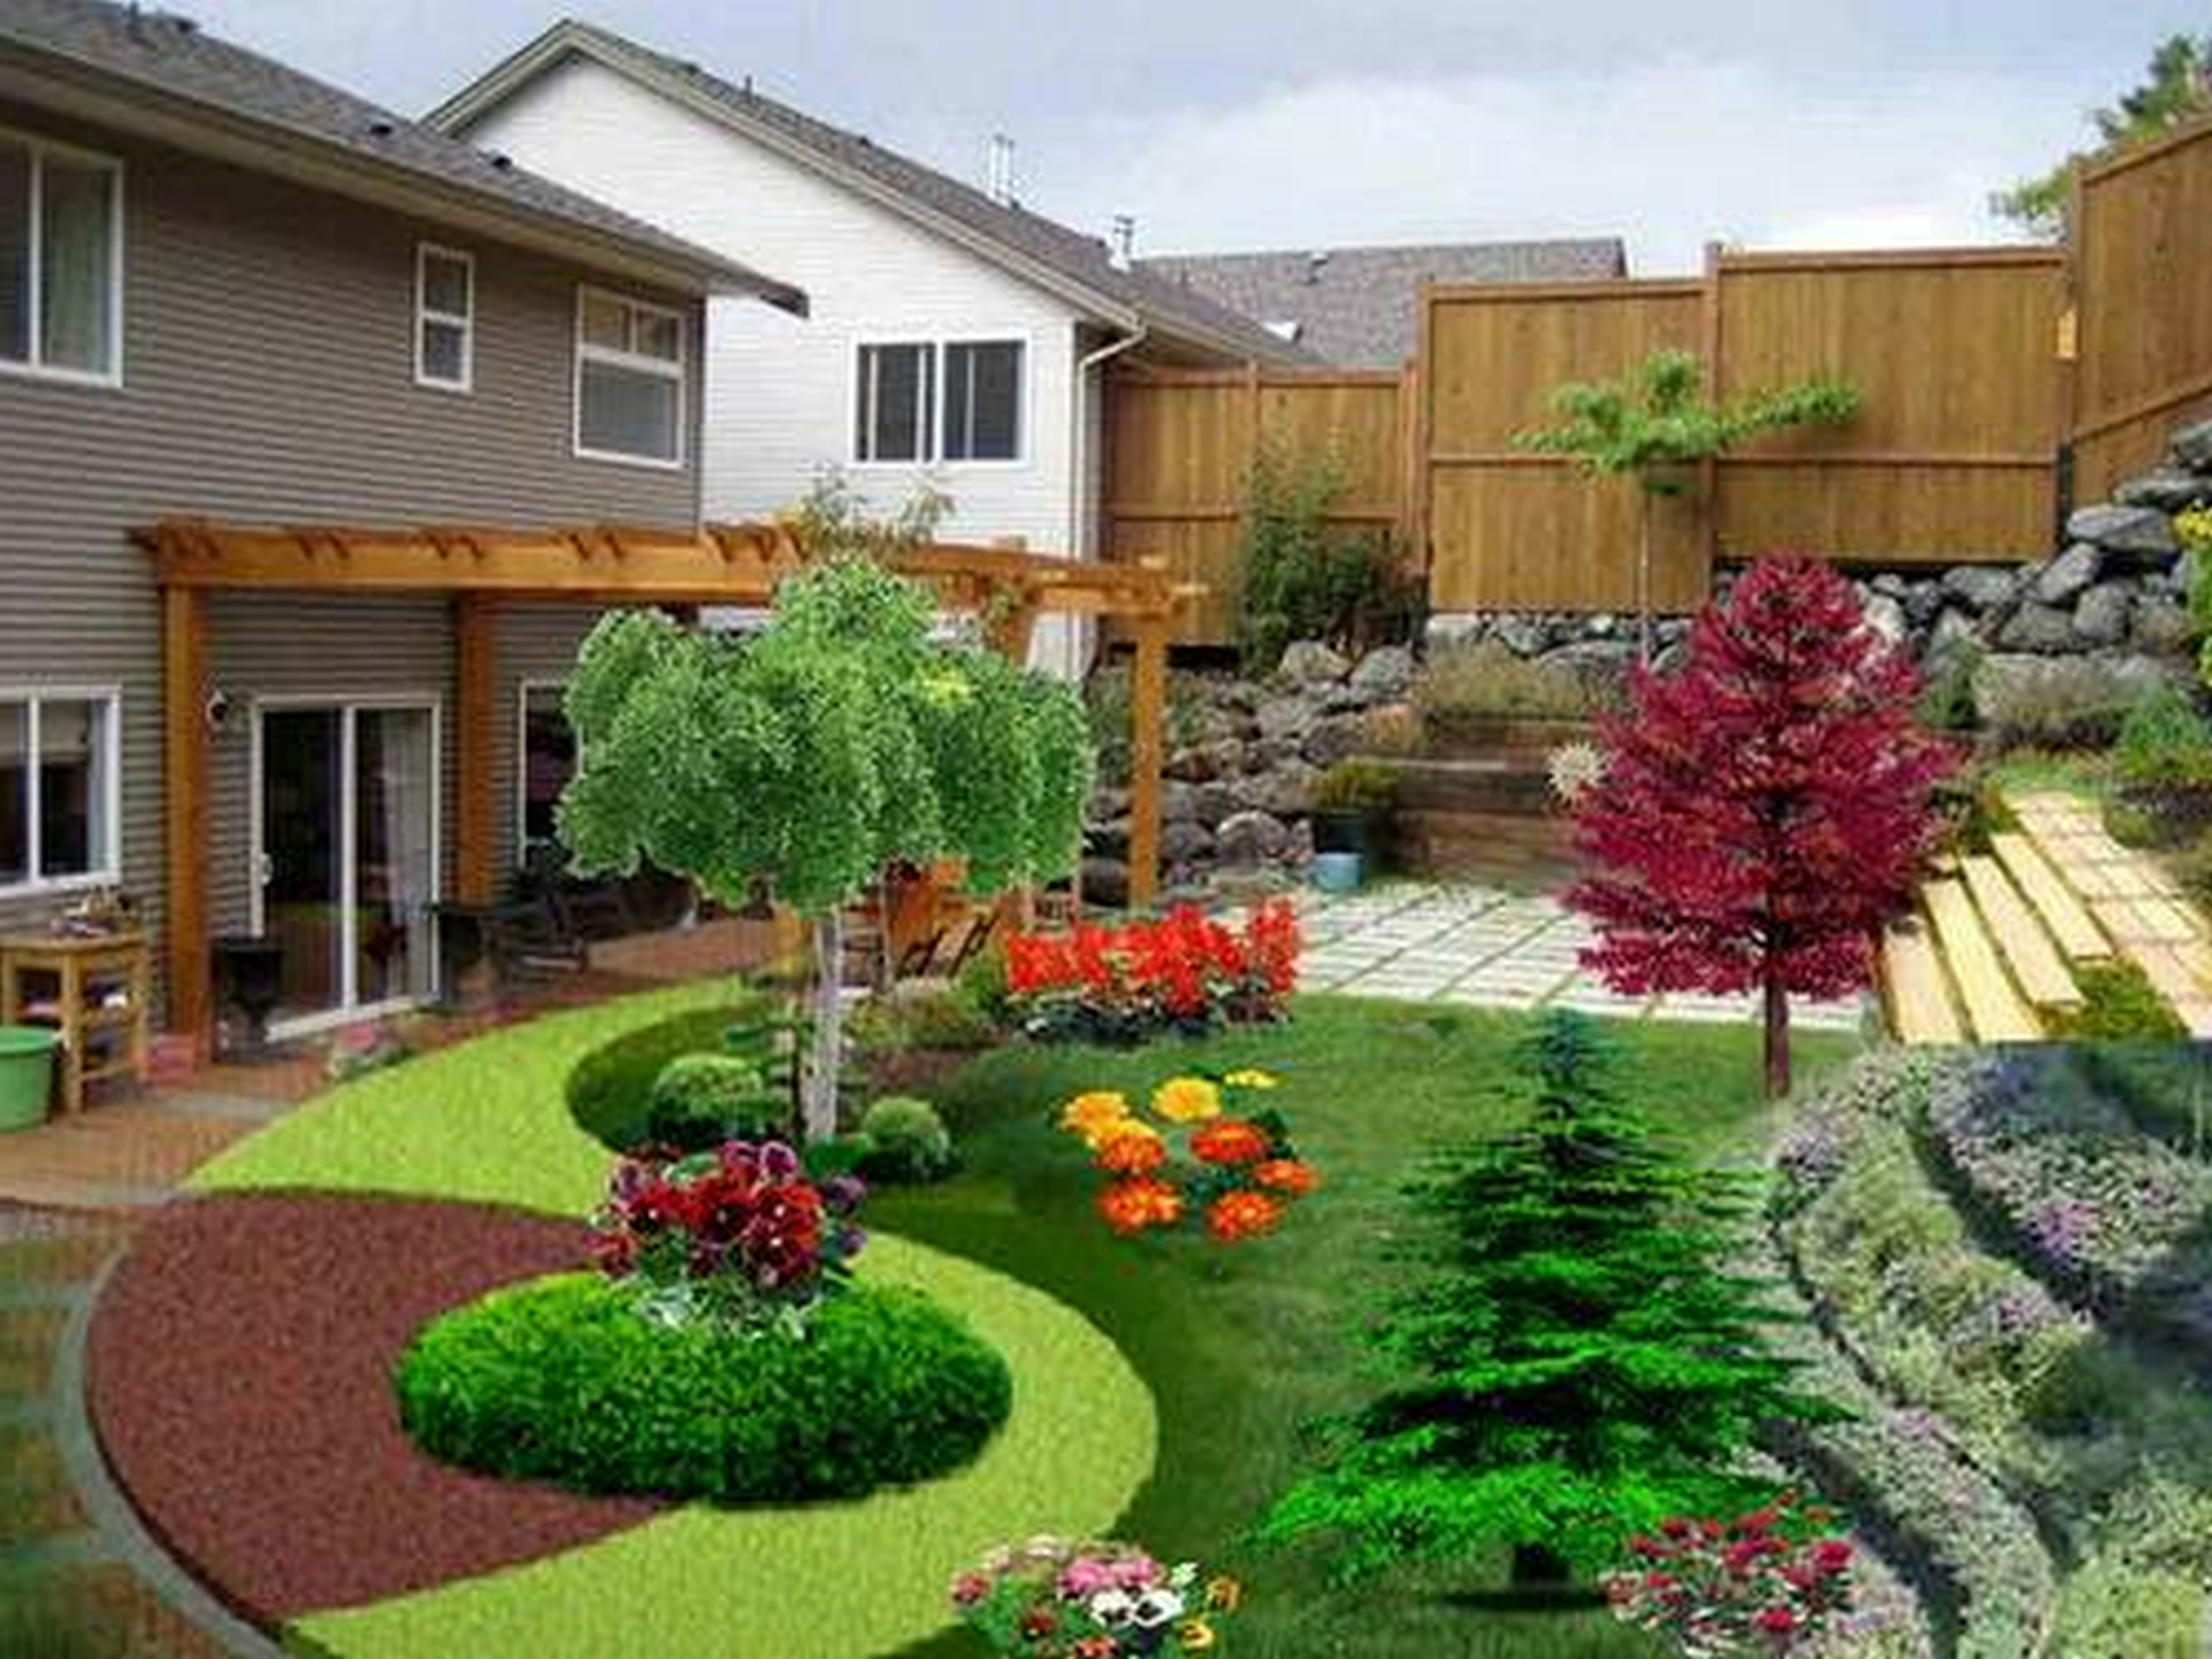 Landscaping Ideas Garage Area : Backyard landscaping small gardens easy ideas